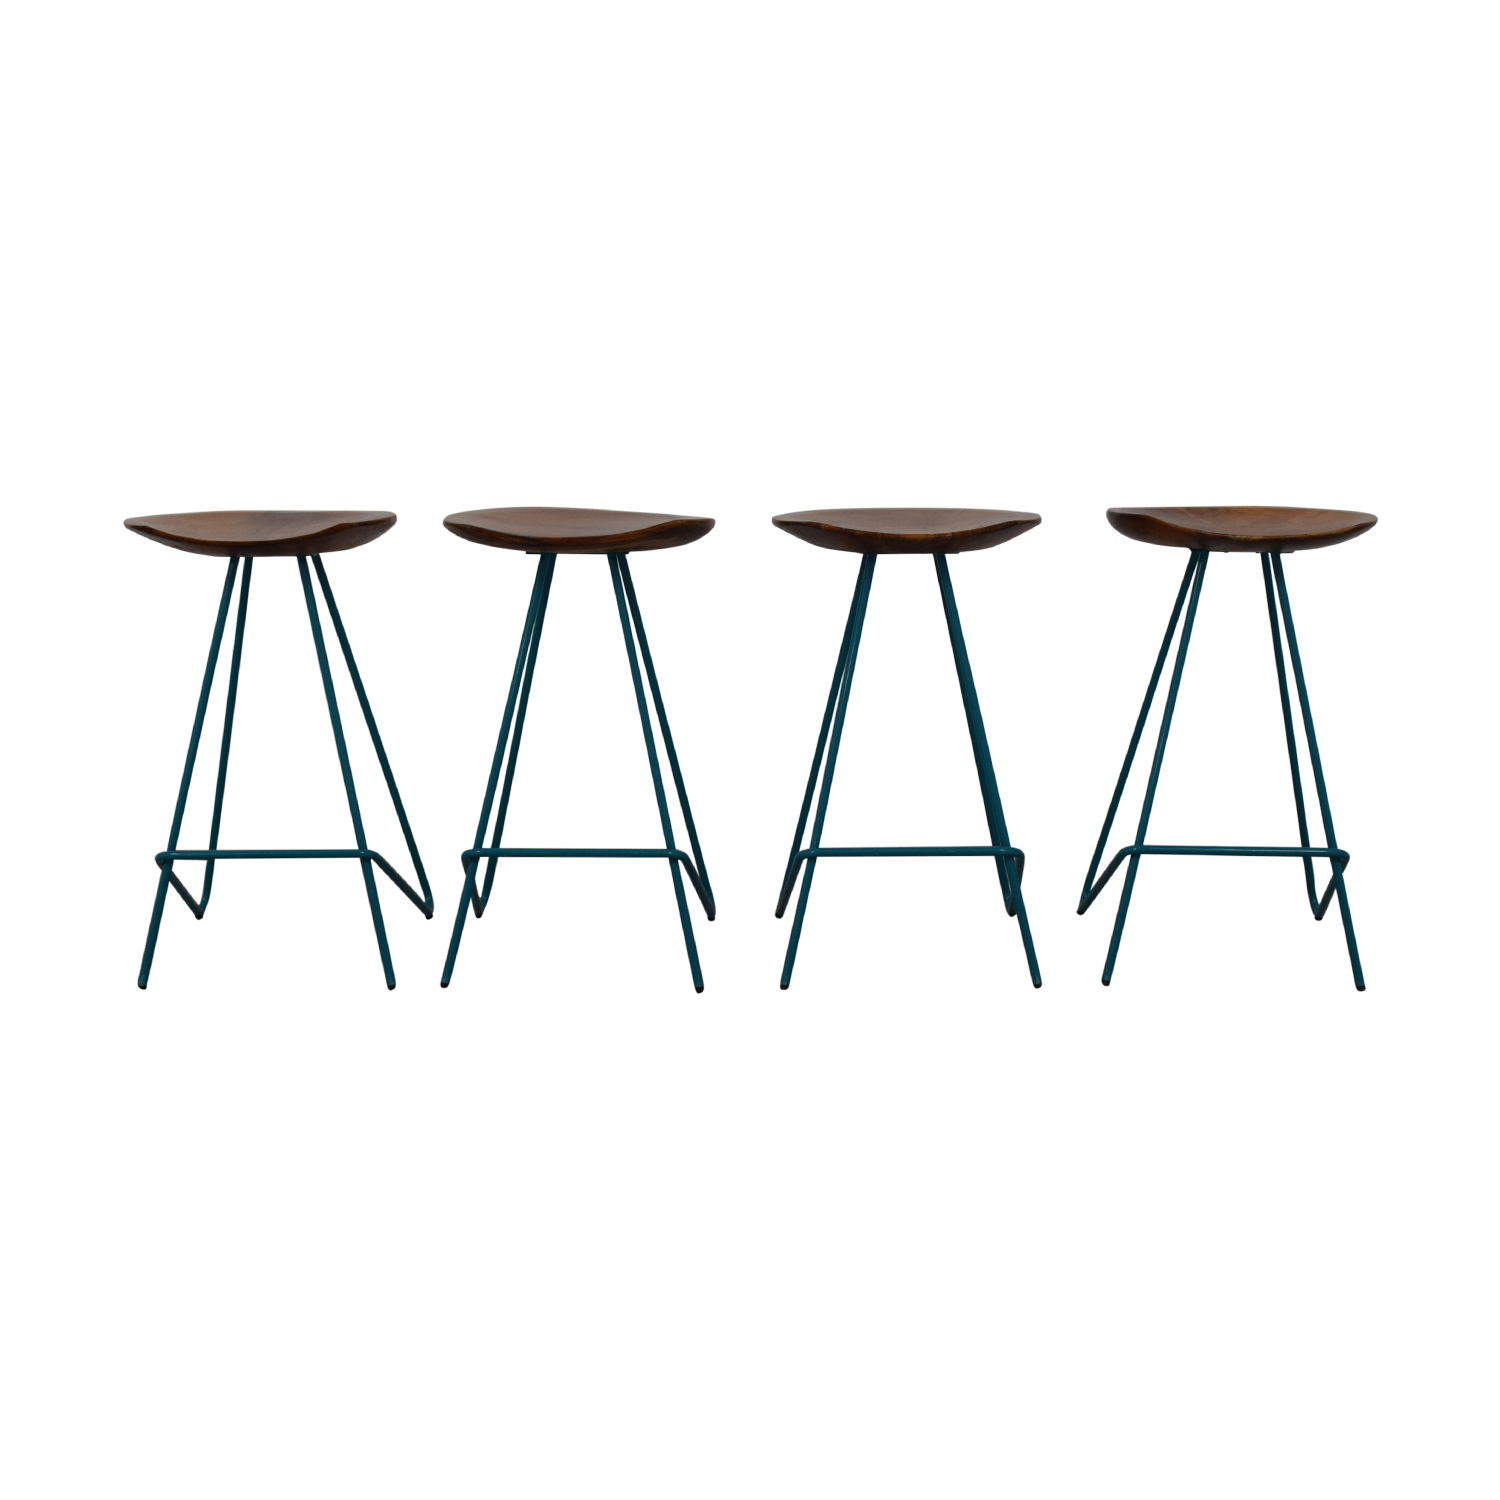 Groovy 67 Off From The Source From The Source Teal Perch Bar Stools Chairs Short Links Chair Design For Home Short Linksinfo